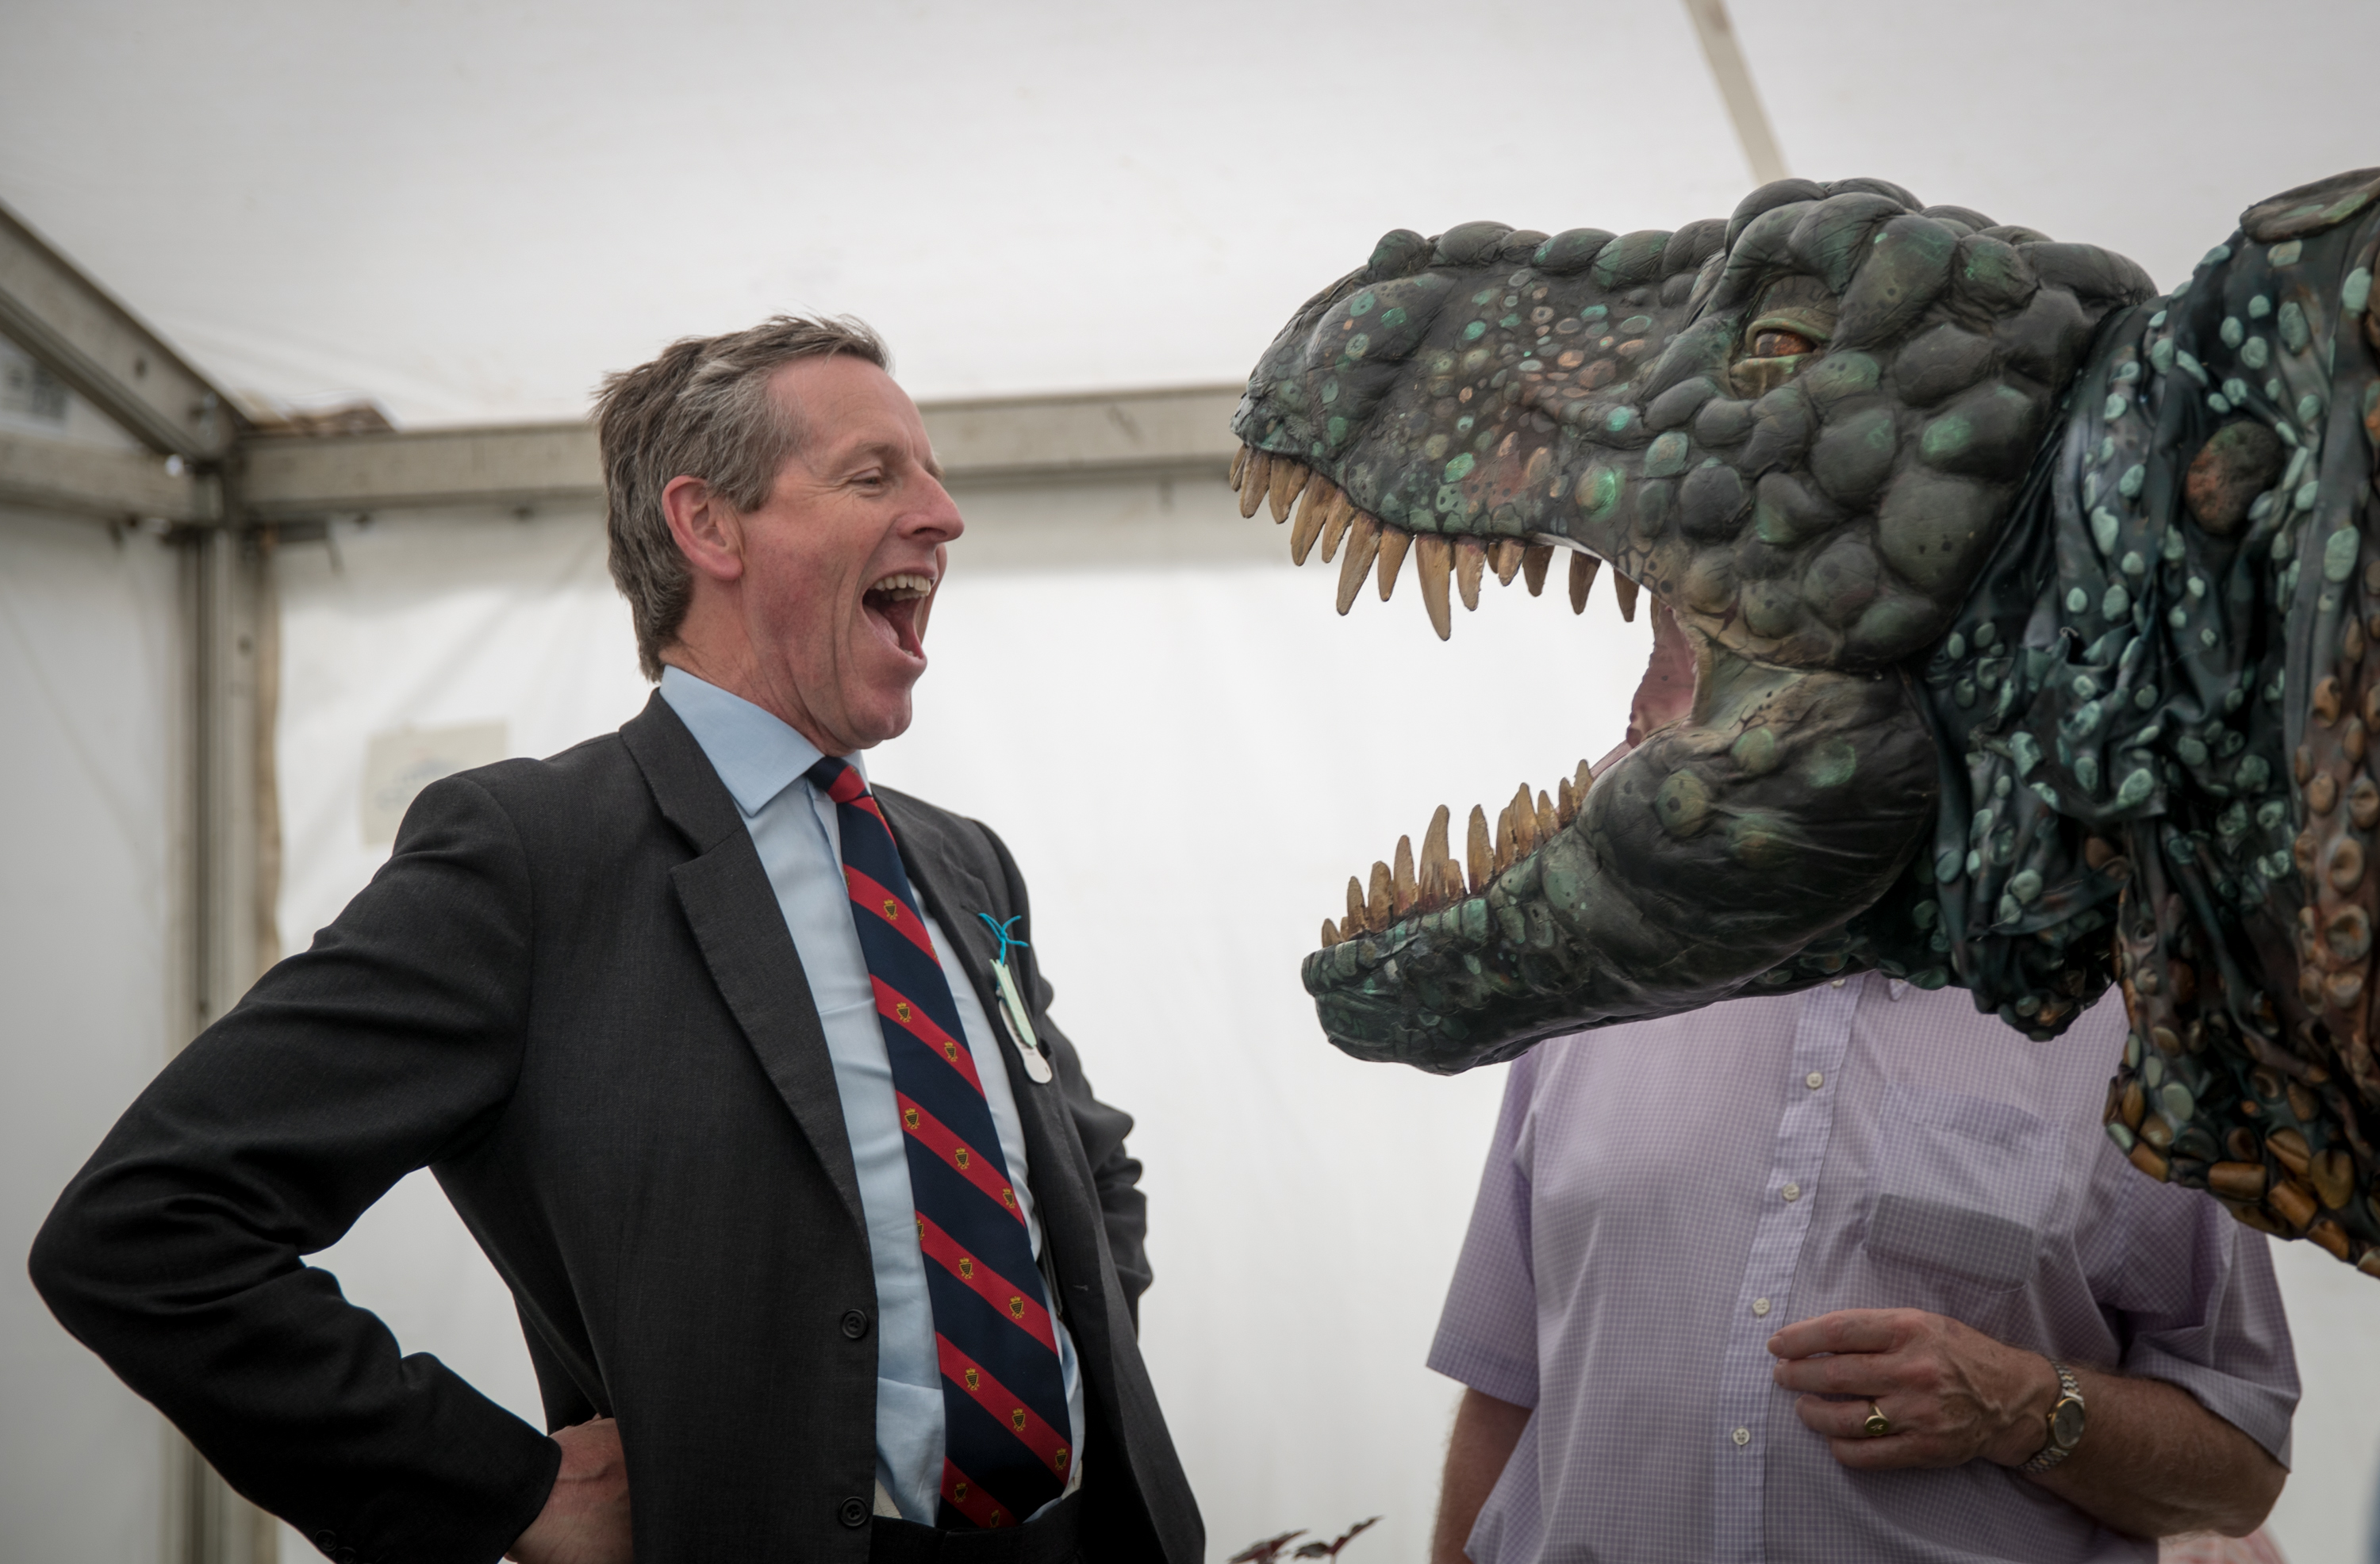 A man reacts to the Eden Project's life-size juvenile Tyrannosaurus rex that has been brought as a preview to the nearby attraction's  Dinosaur Uprising  opening this summer on June 9, 2016 near Wadebridge, England.